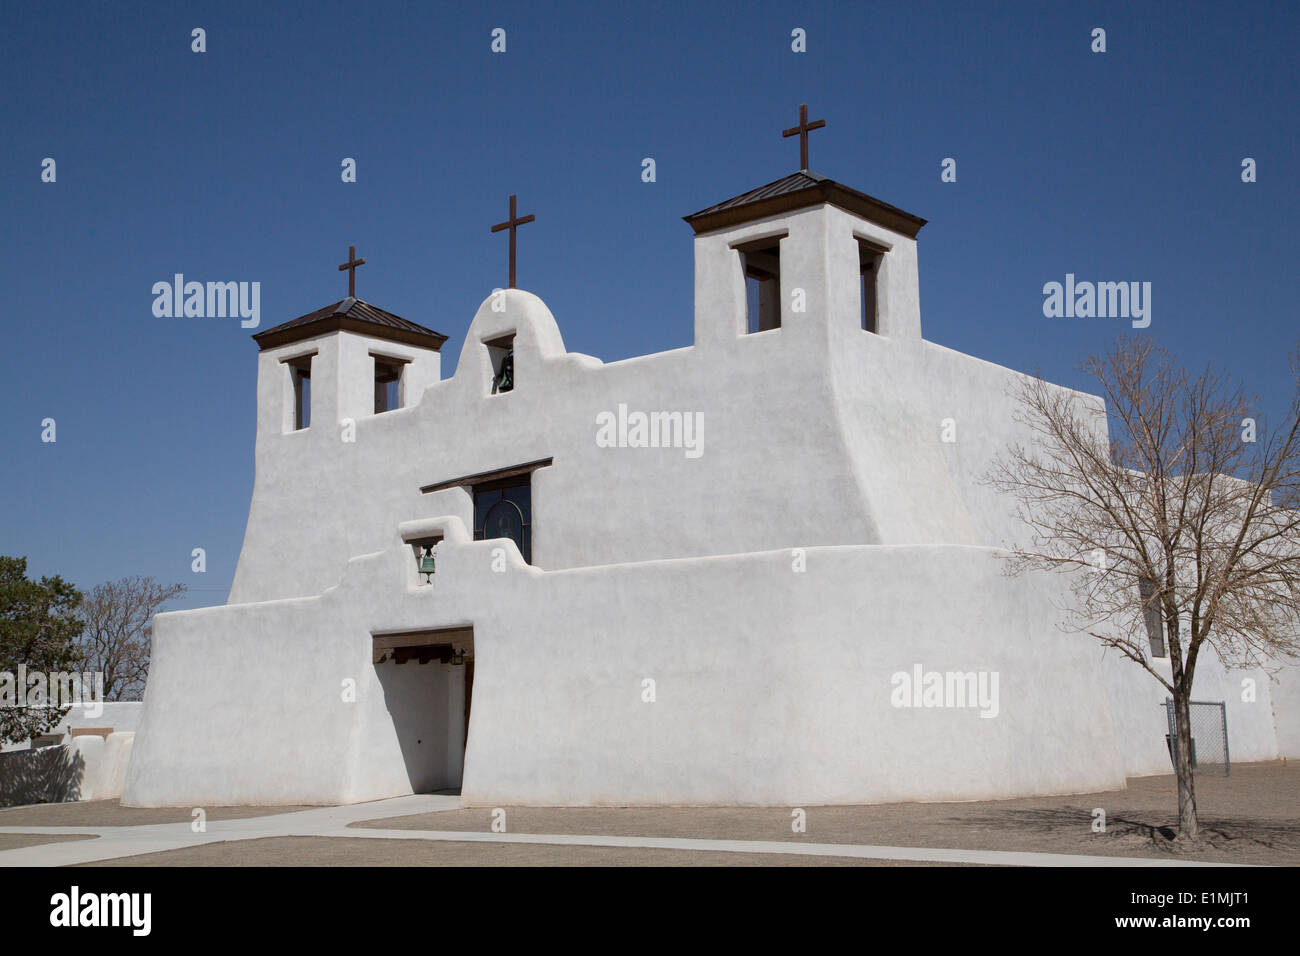 USA, New Mexico, Isleta Pueblo, Saint Augustine Mission, originally built in 1612 - Stock Image